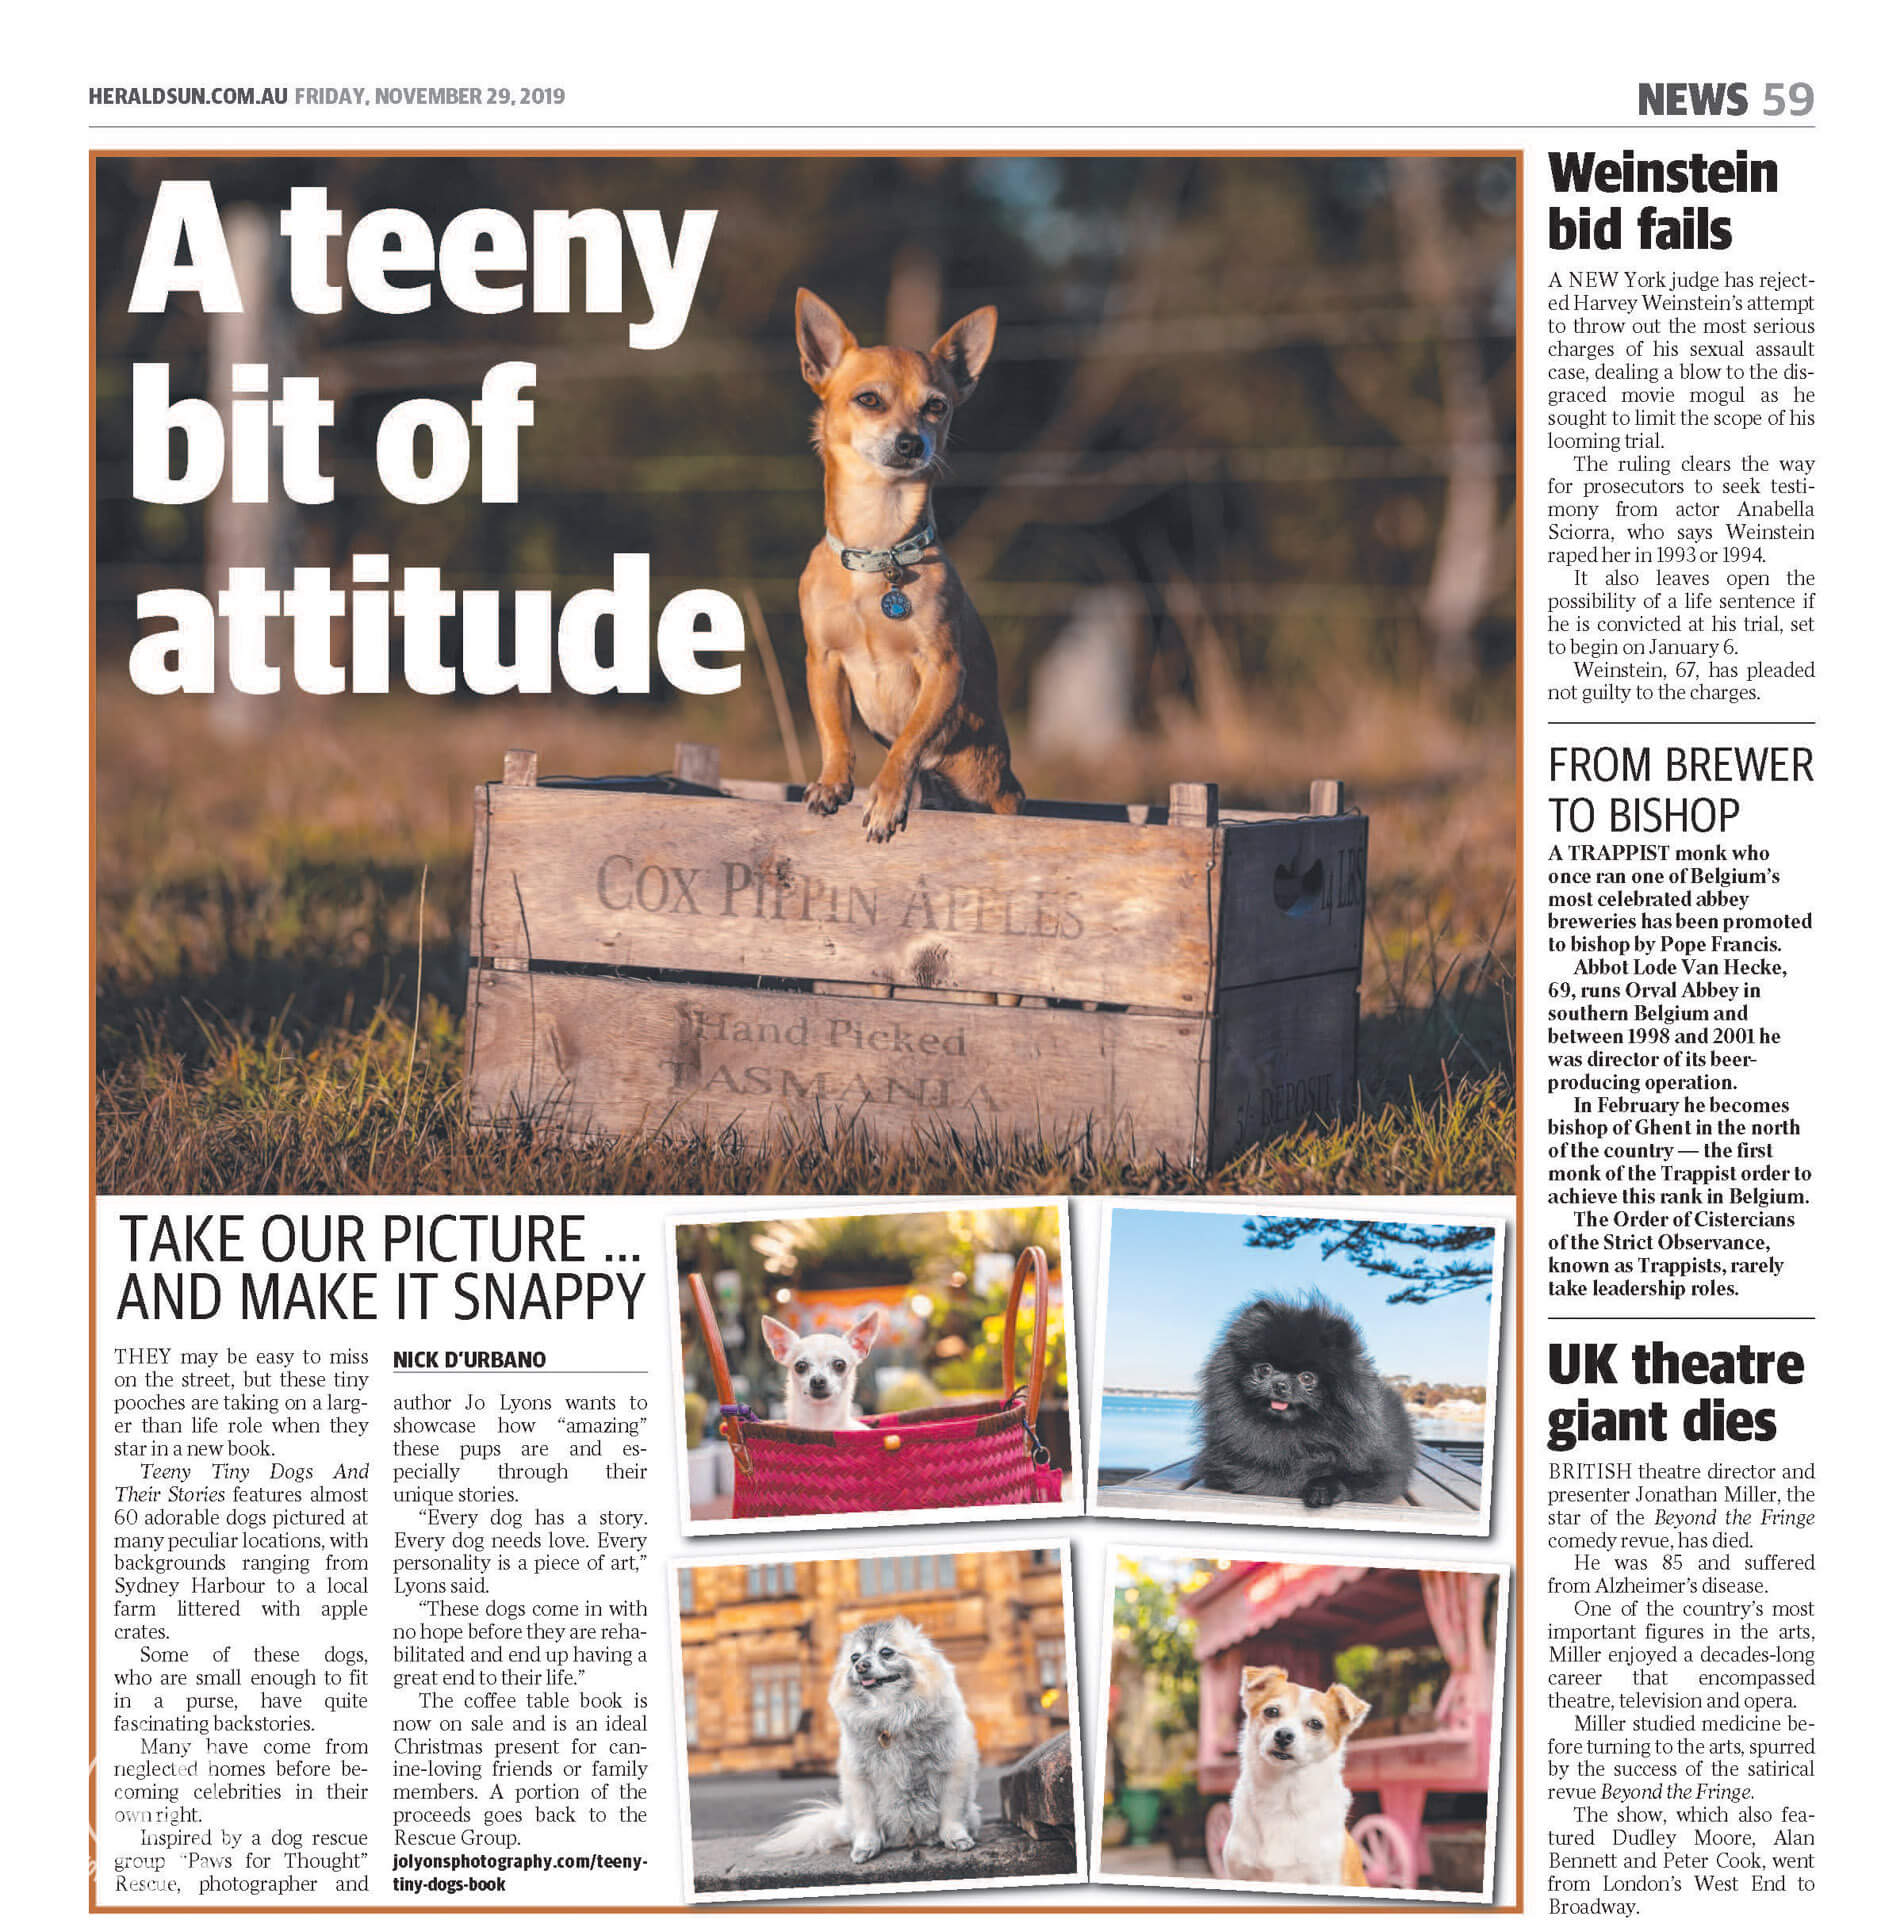 Teeny Tiny Dogs article in the Herald Sun. Deer-headed Chihuahua on apple box sunset